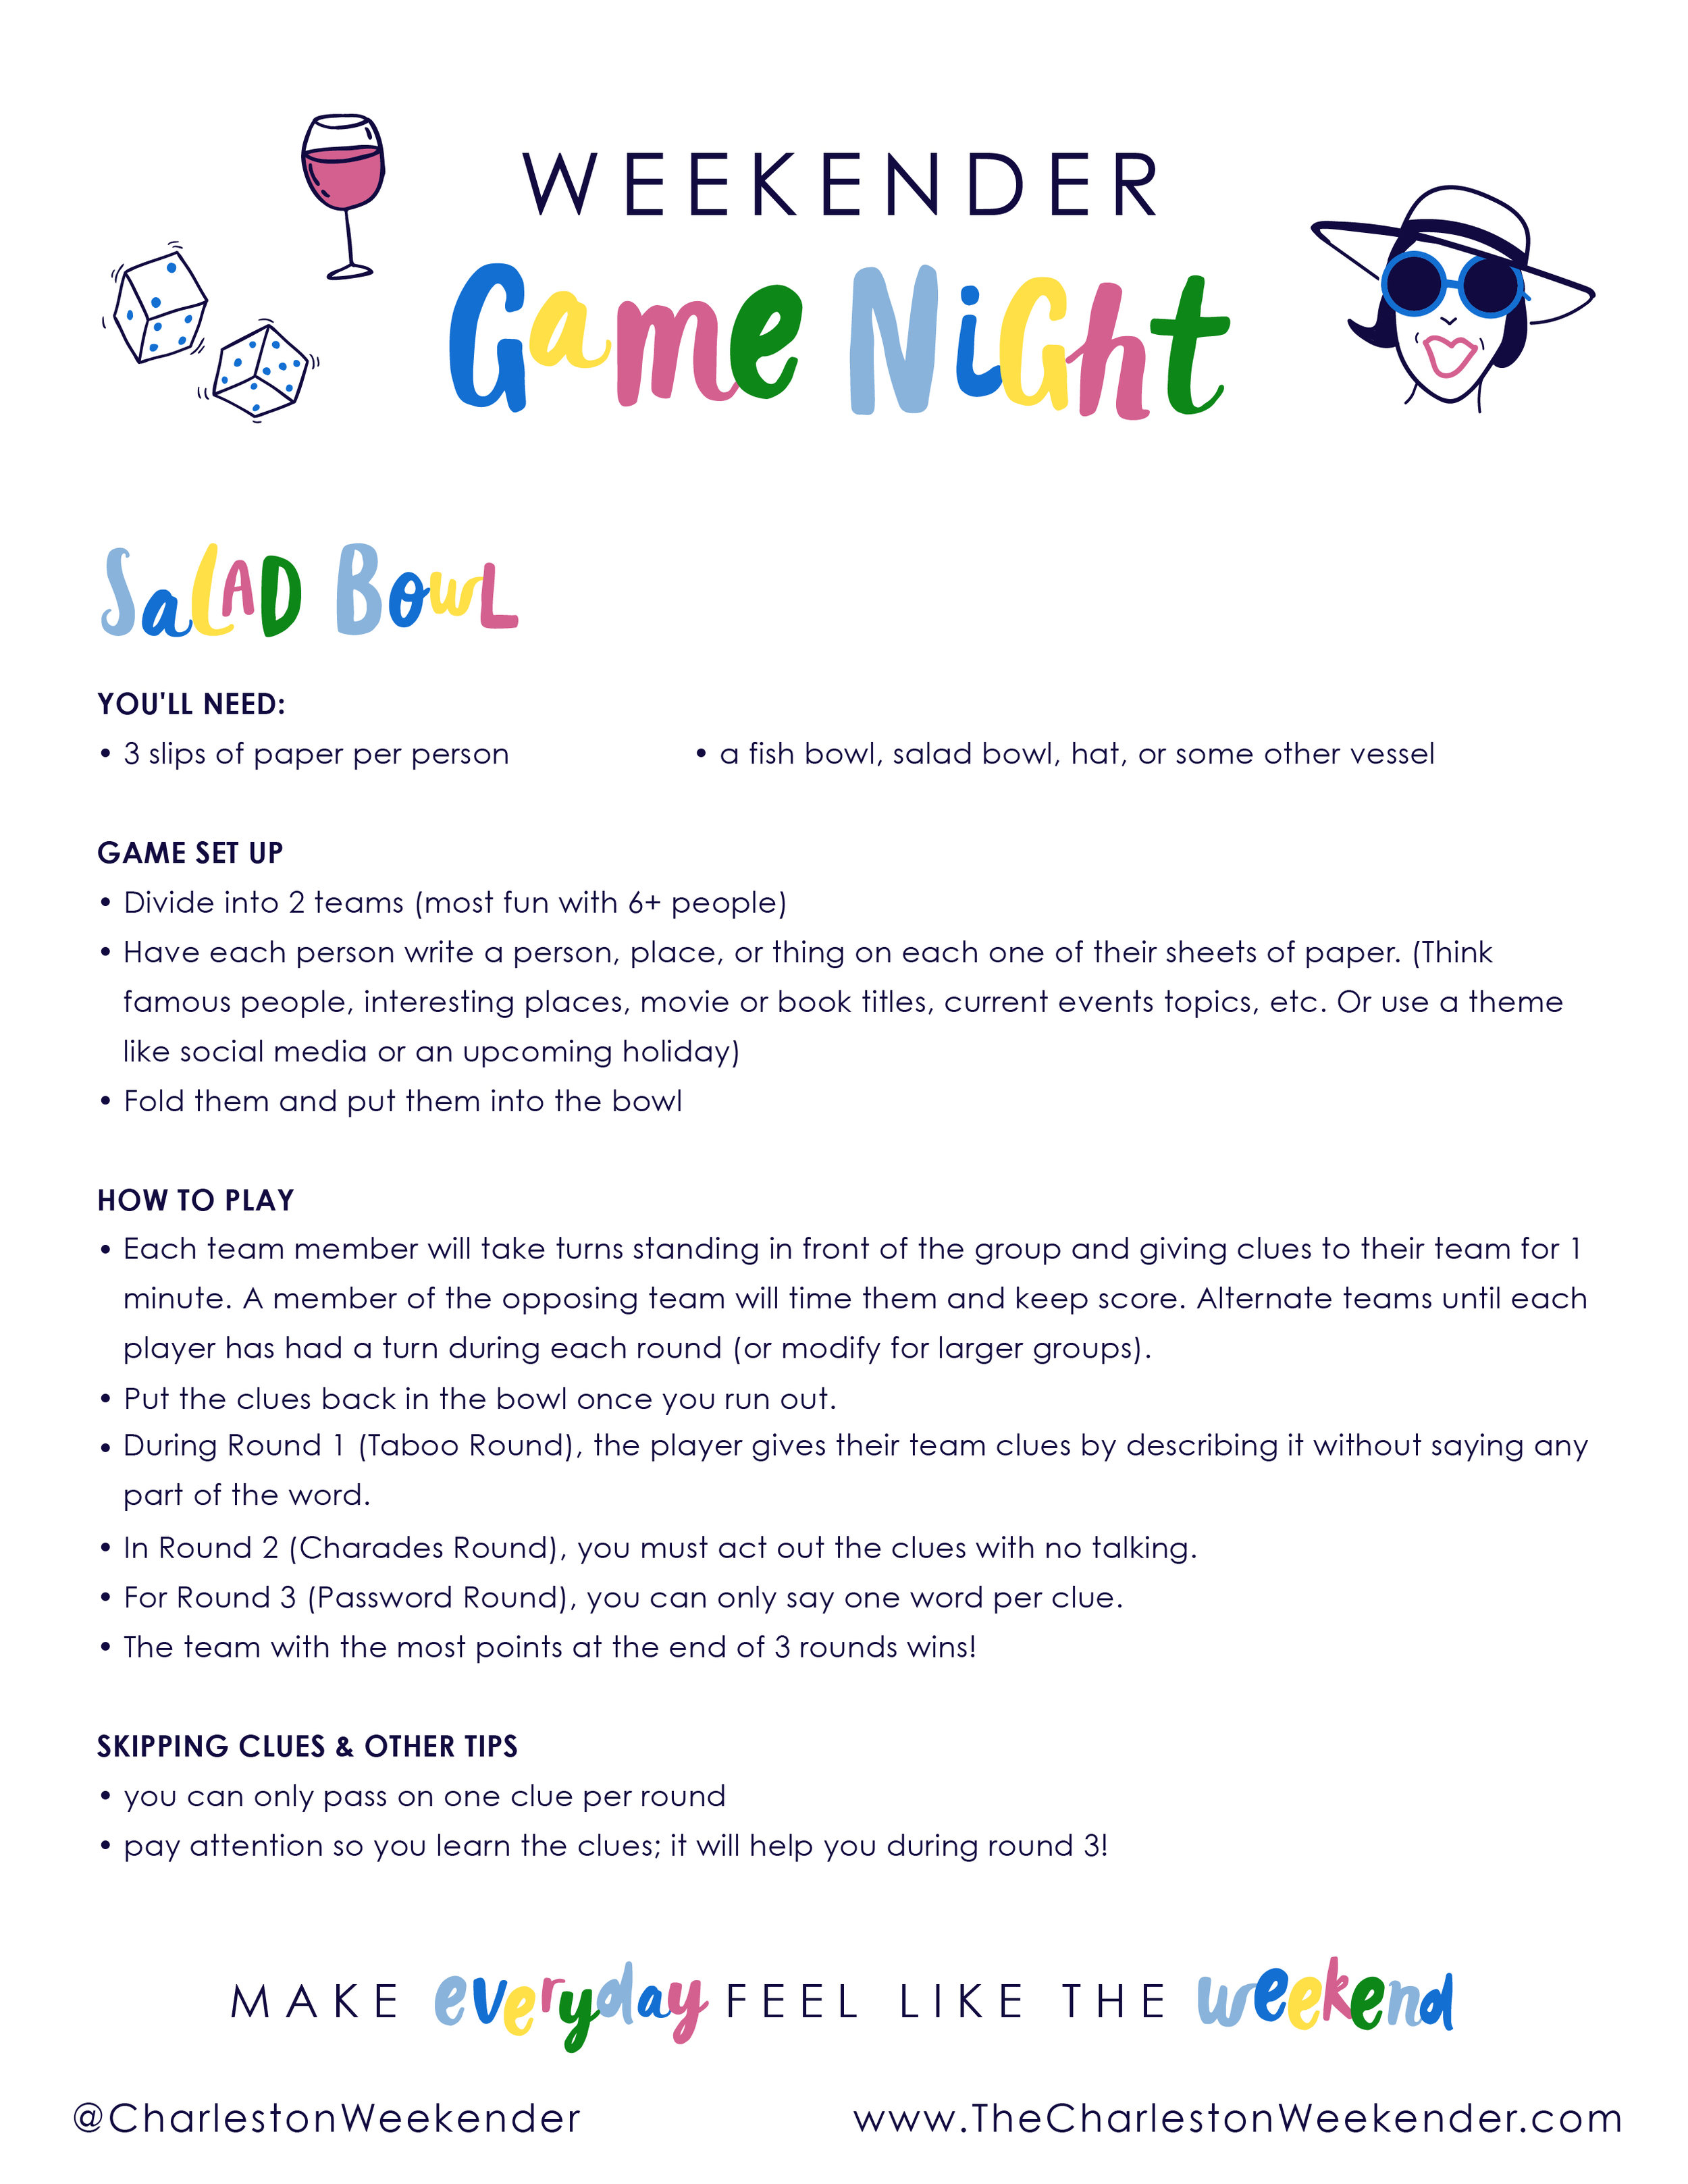 Charleston Weekender Game Night Salad Bowl Instructions Download Alt Summit